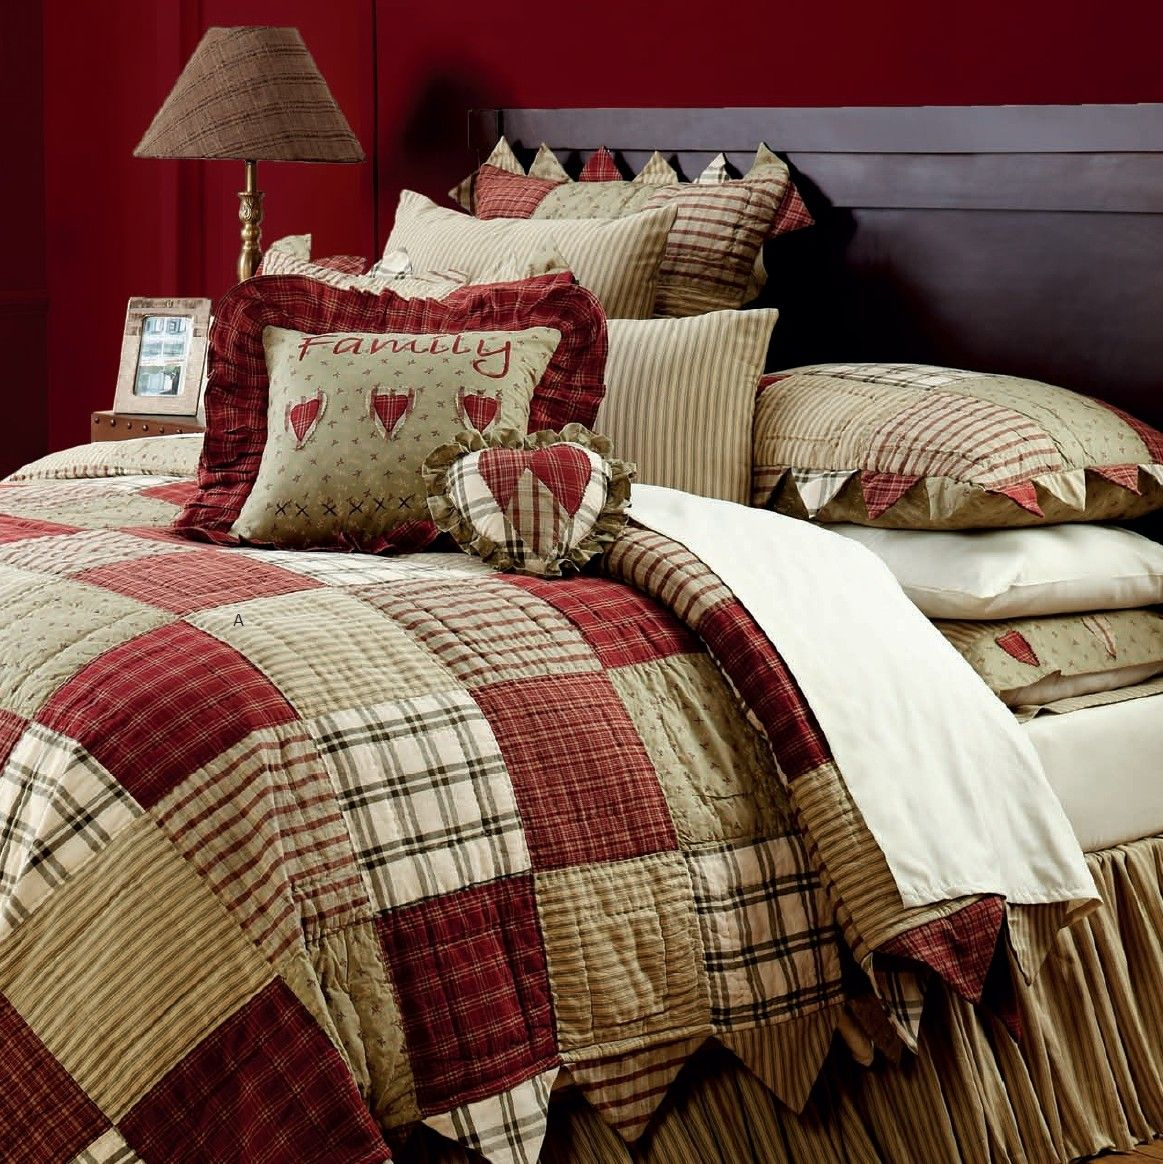 Lasting impressions heartland country quilt comforter co for Bedroom quilt ideas